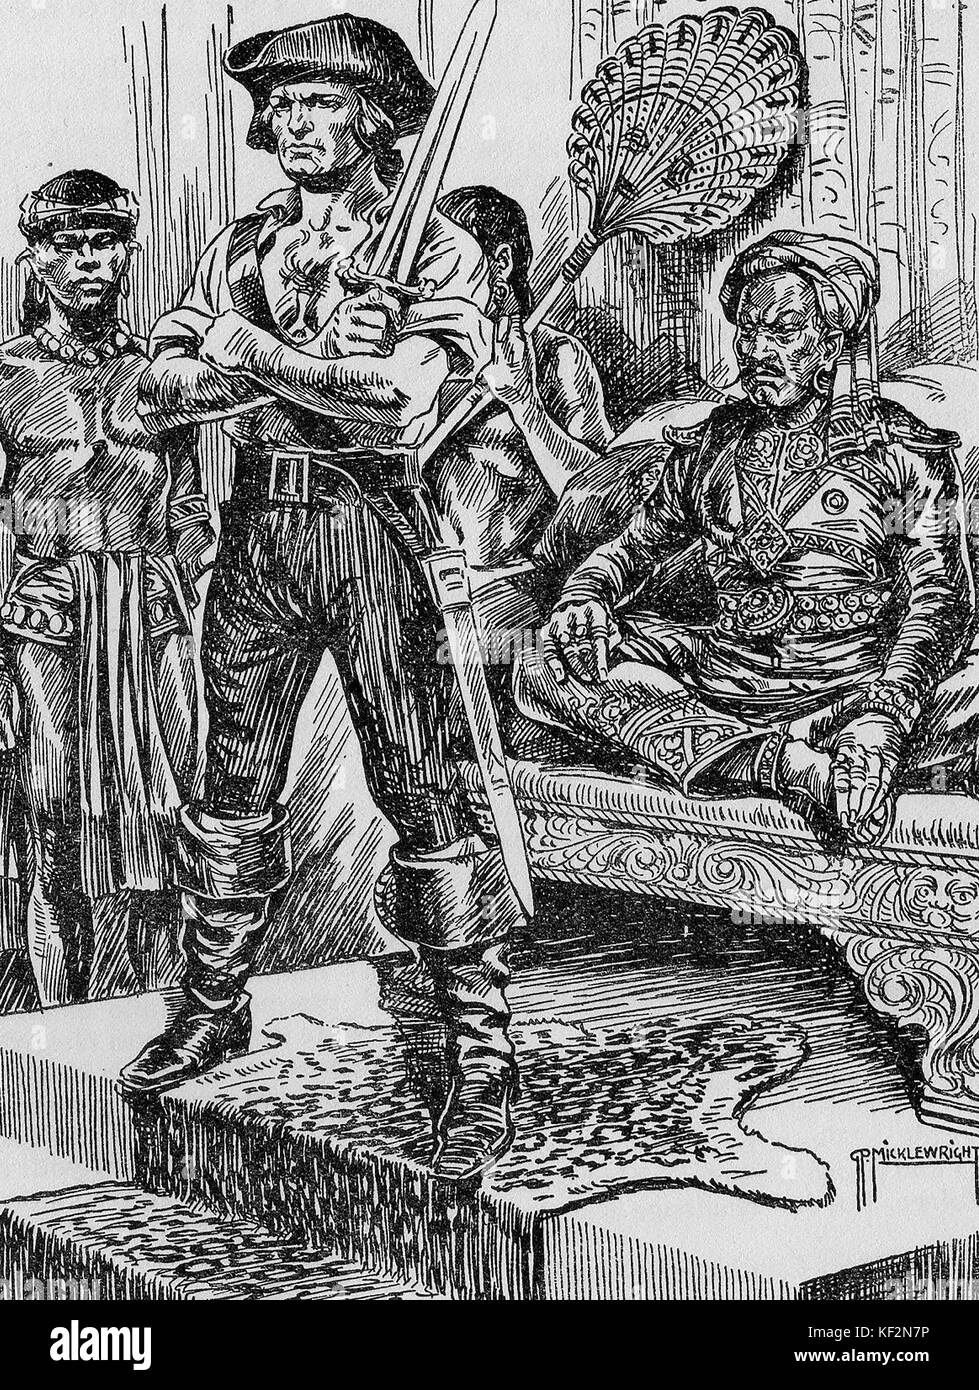 A romantic sketch of a pirate at the court of a fictional foreign leader (1932 image) - Stock Image